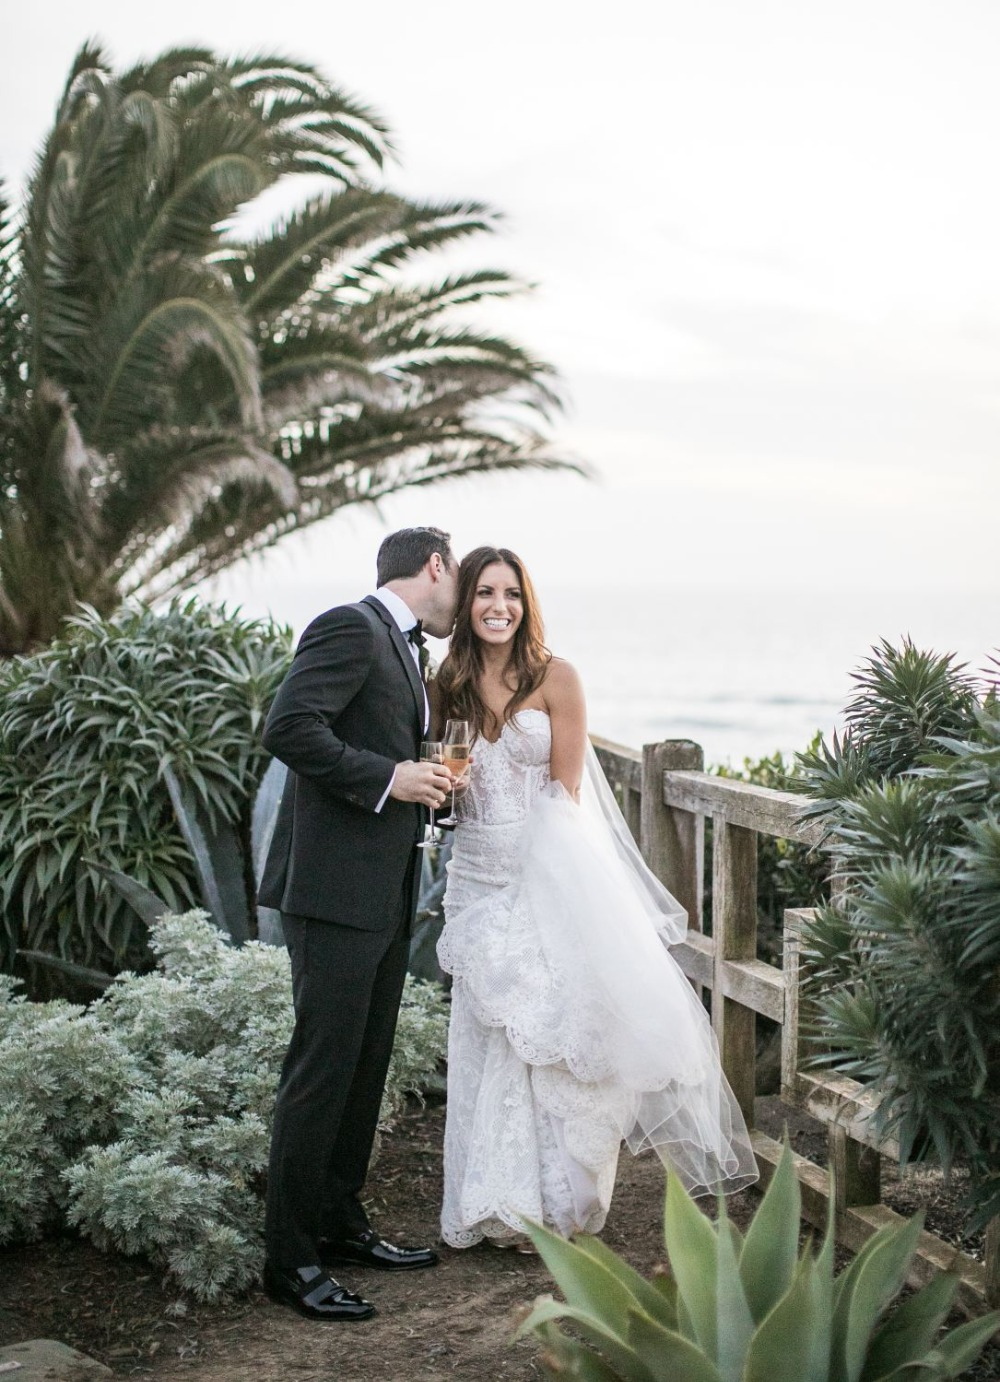 48d907ca70a7 Gallery - How To Turn Your All White Wedding Day Into A Glamorous Dream